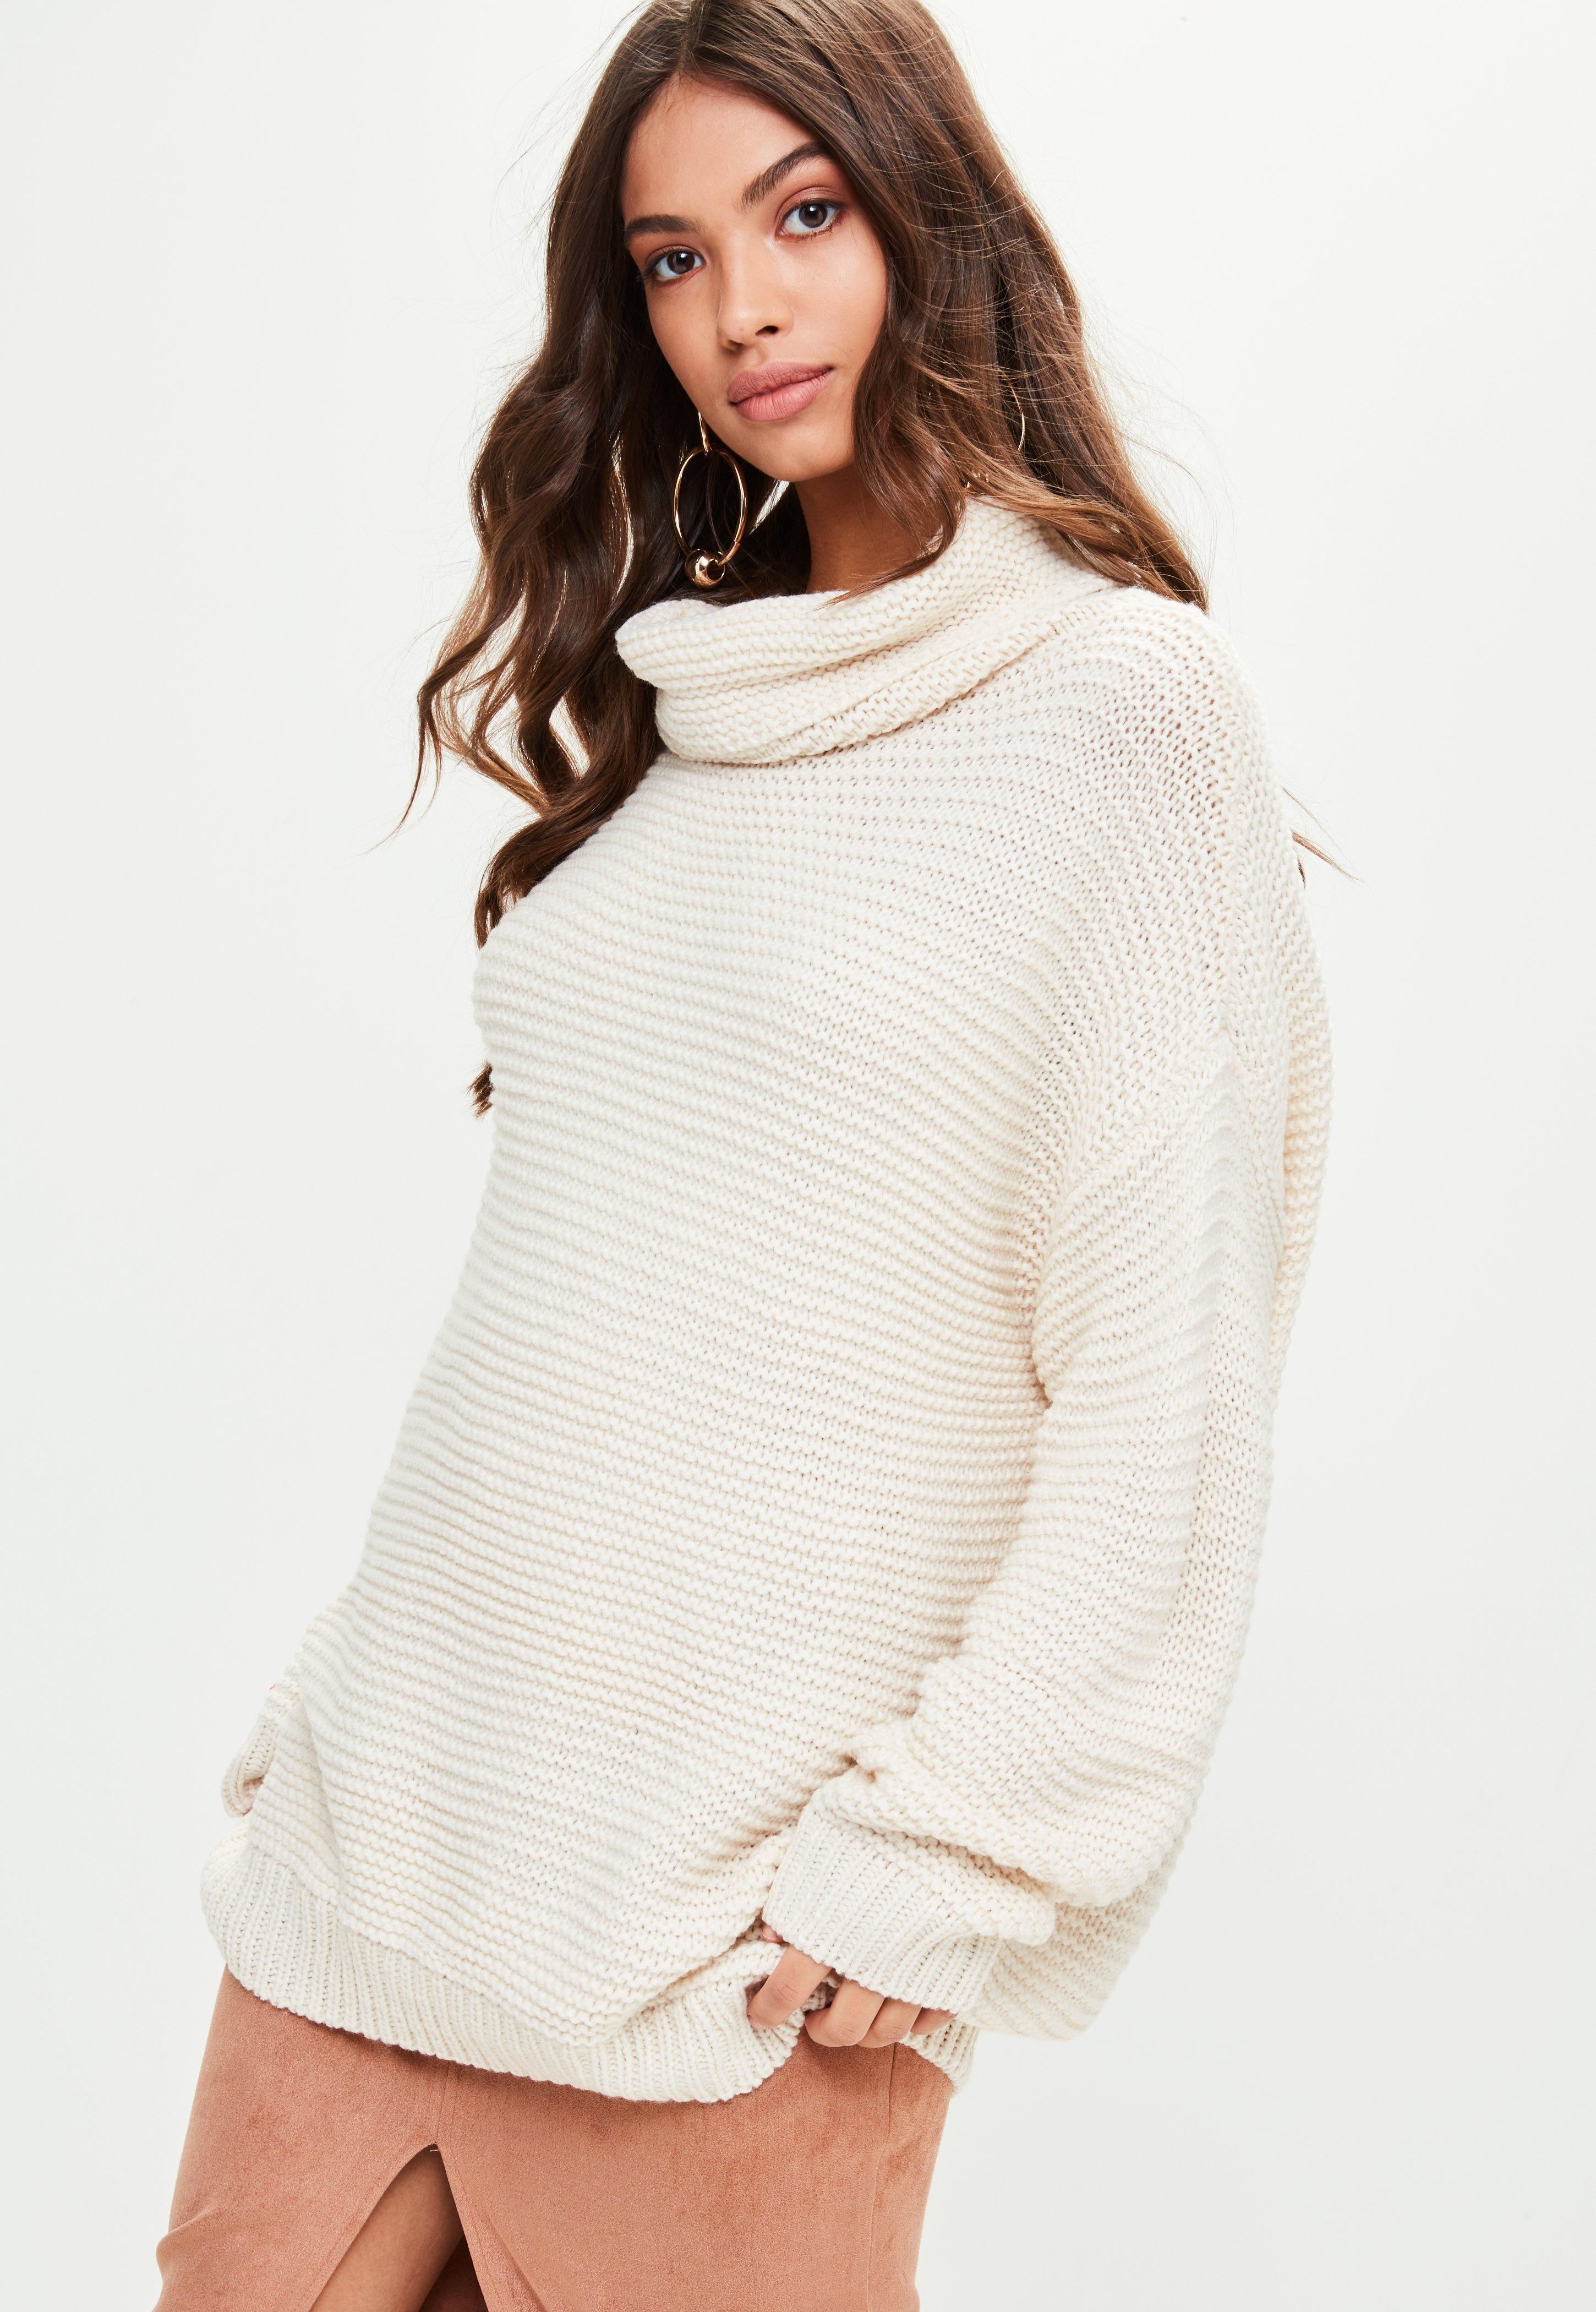 Lyst - Missguided Beige Oversized Slouchy Knitted Jumper in Natural a678cb3f2